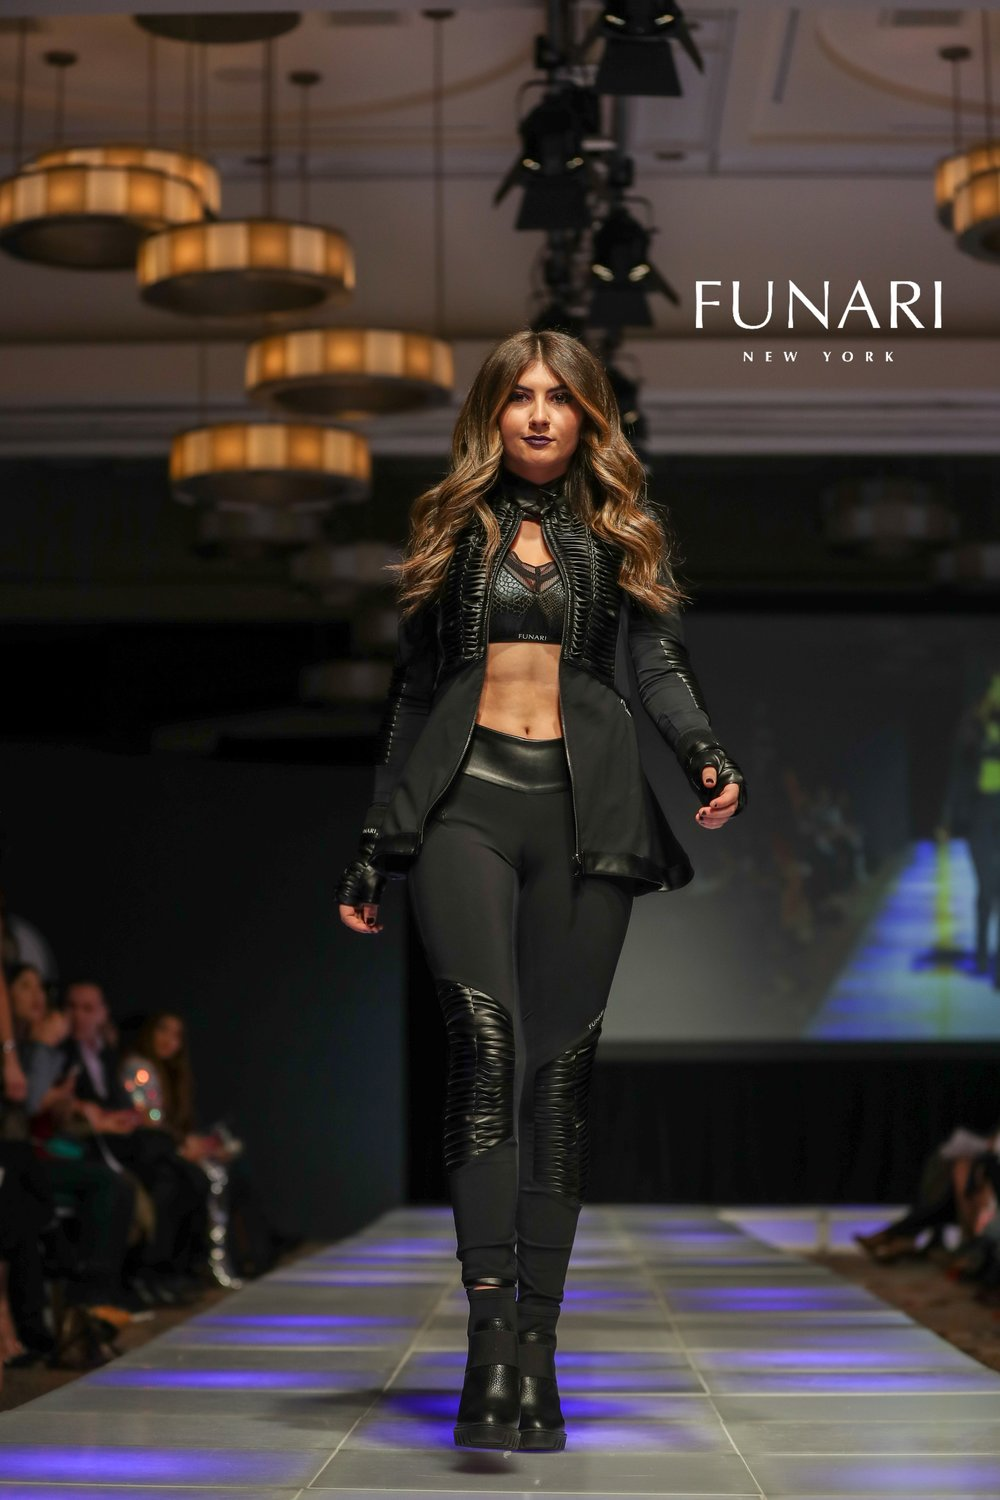 COUTURE LOGO JANLLE FUNARI MODEL MADISON PURICELLI 2018CFW0210-1X2V6543.jpg